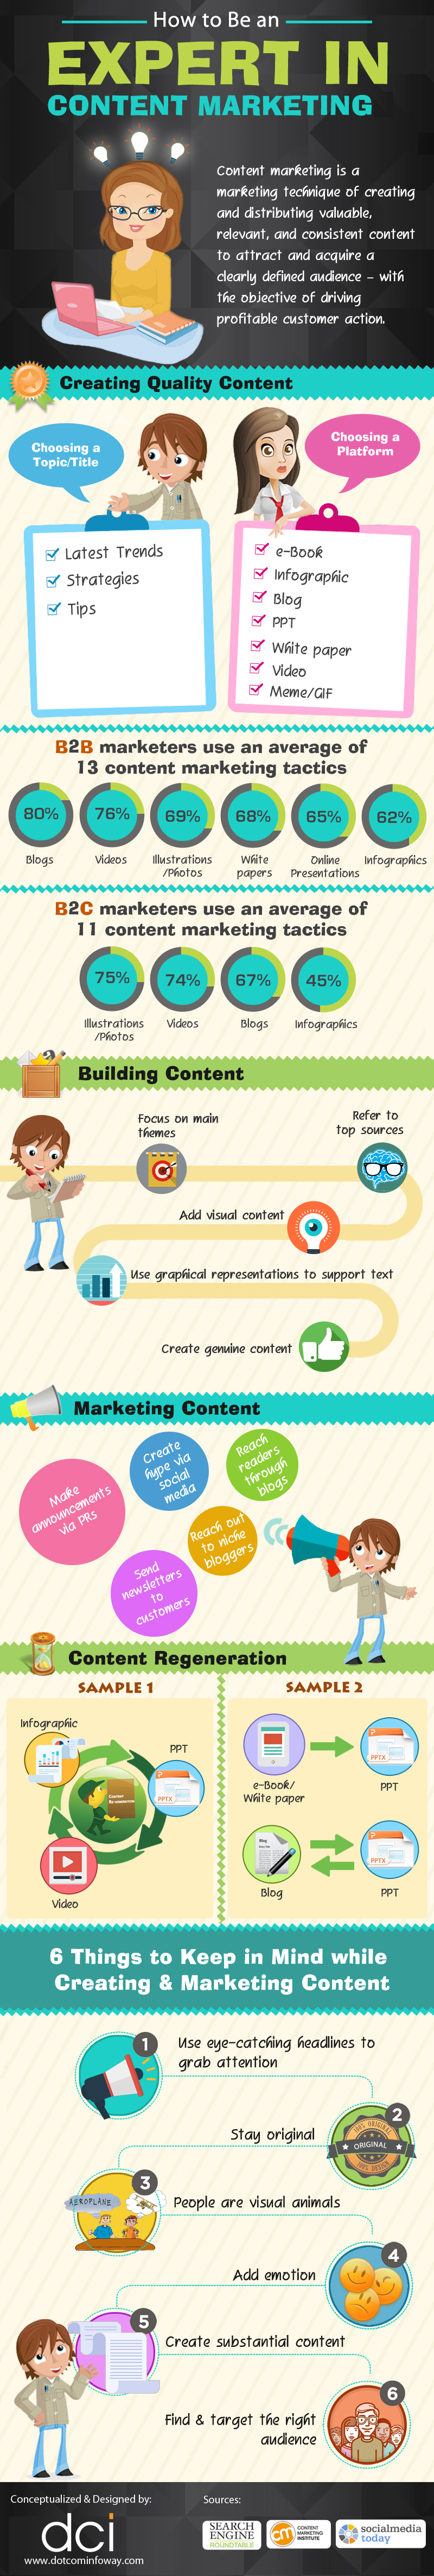 how-to-be-an-expert-in-content-marketing